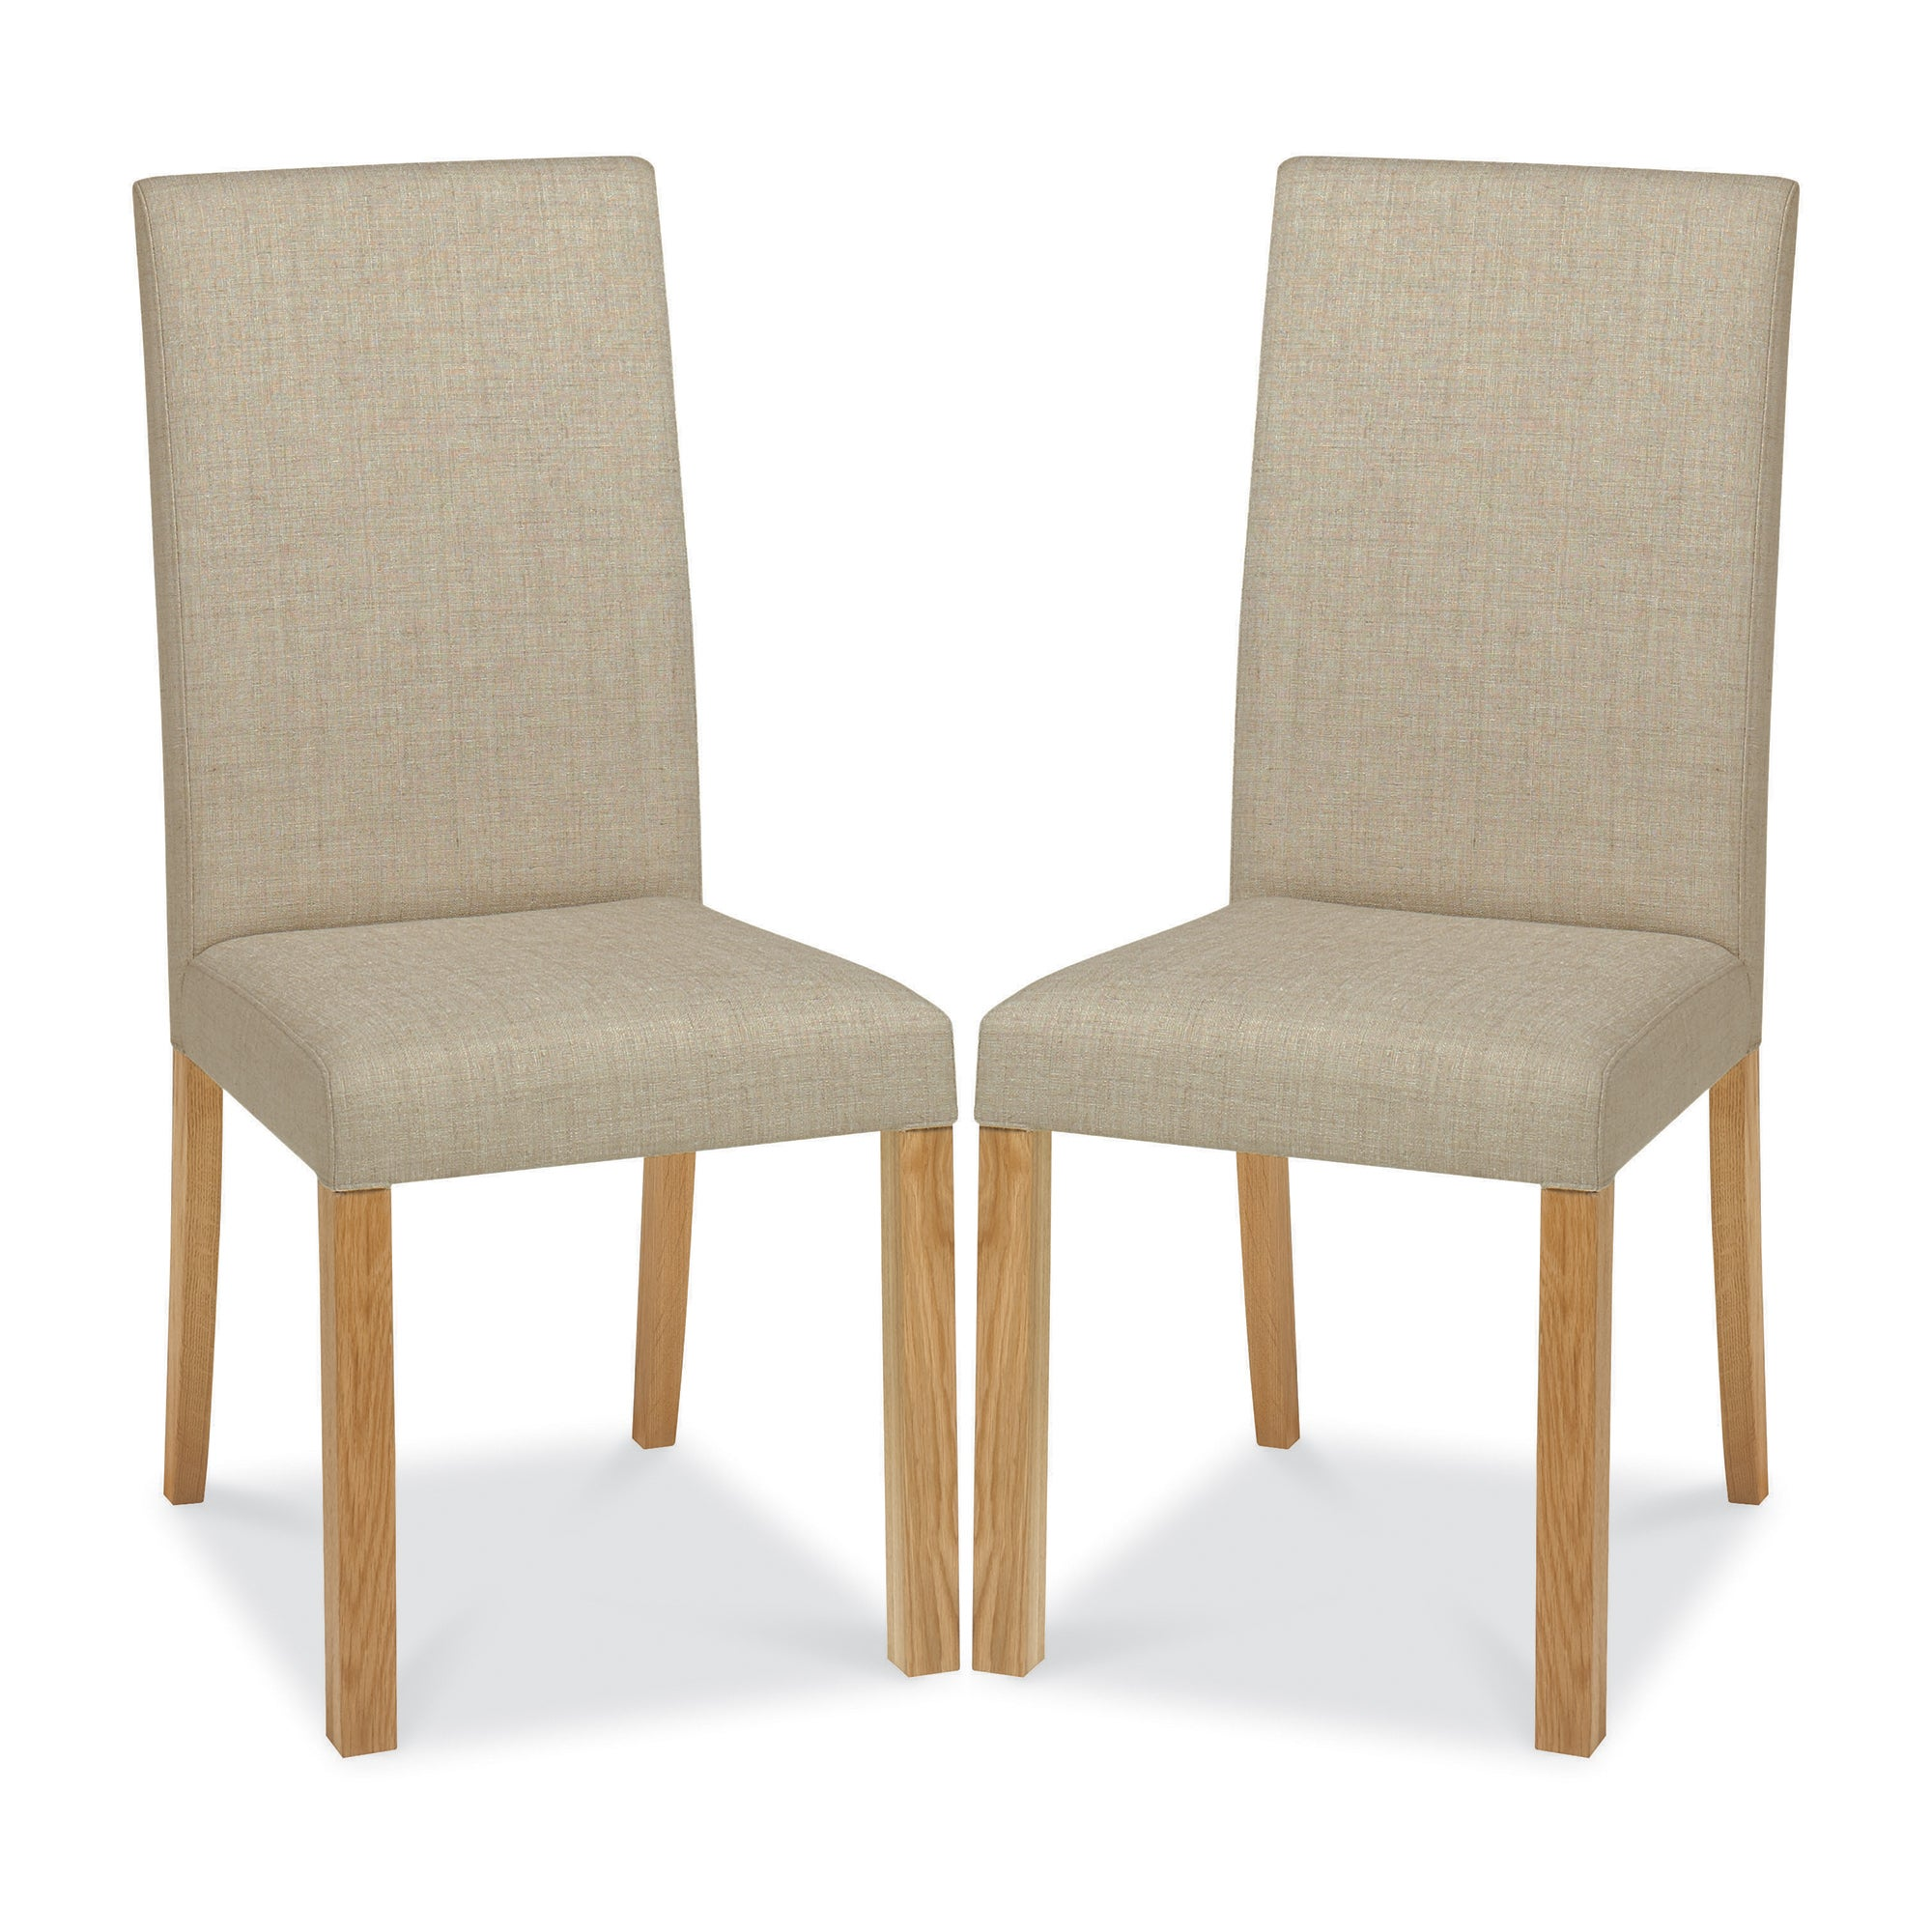 Knox Natural Oak Pair of Upholstered Chairs